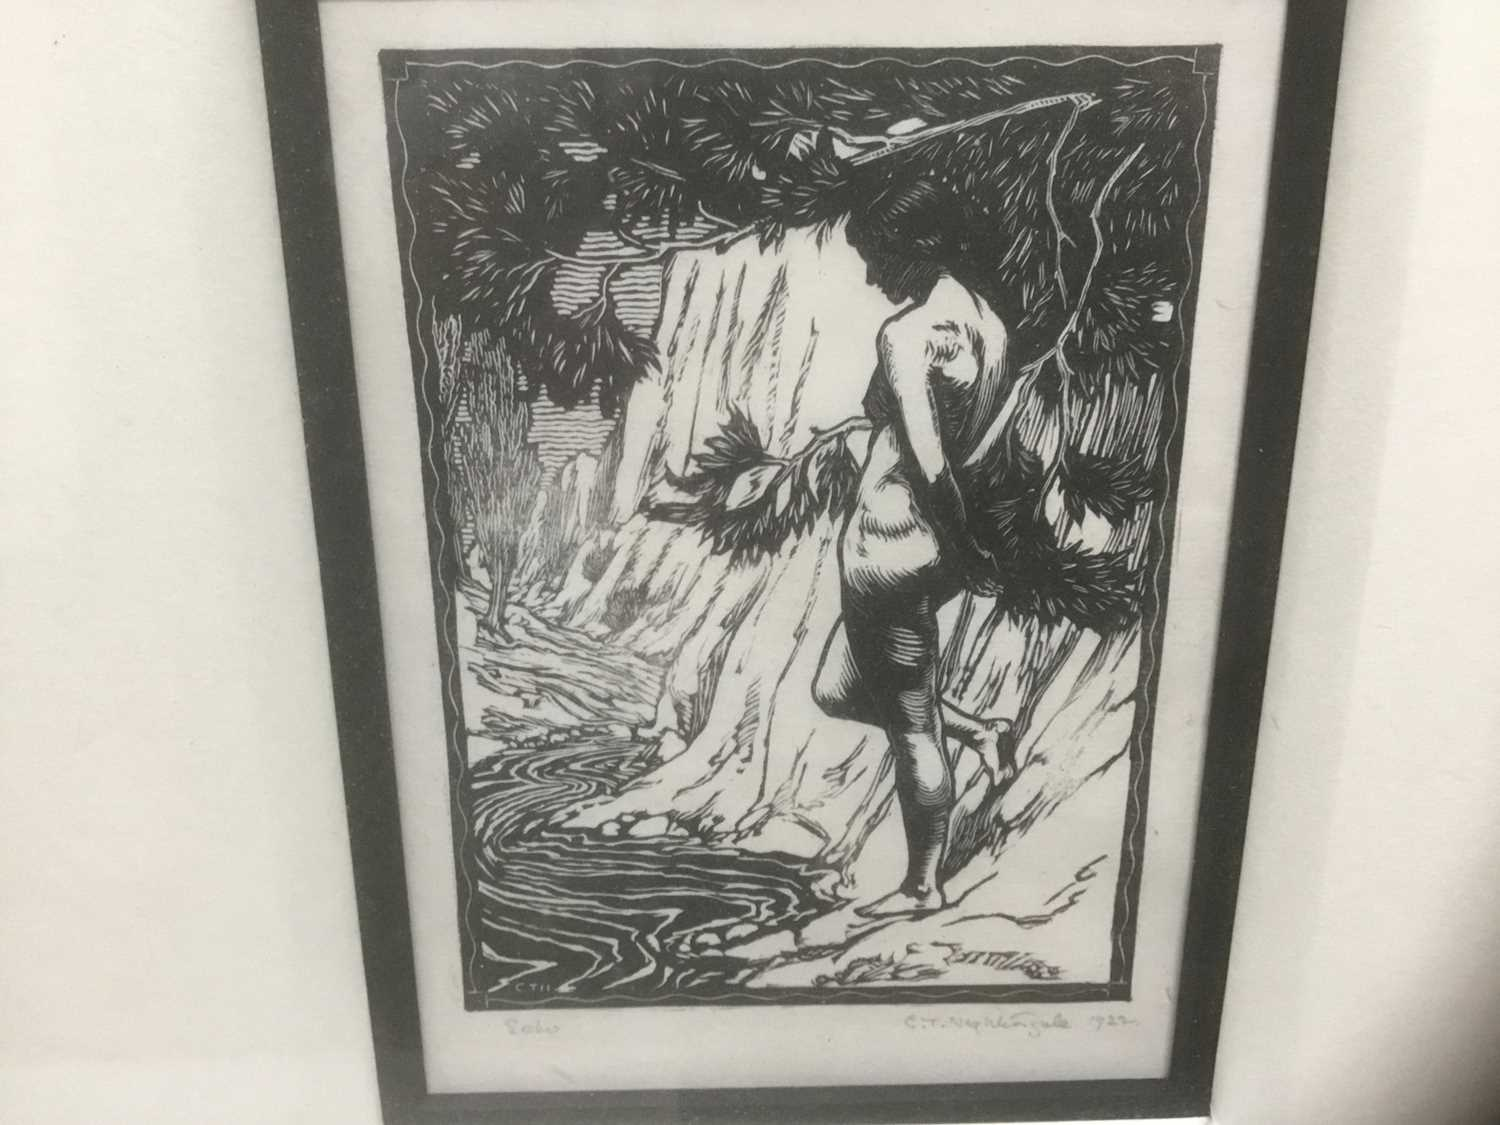 Charles Thrupp Nightingale (1878-c.1939) signed woodcut - Echo, titled, signed and dated 1922 in pen - Image 2 of 7